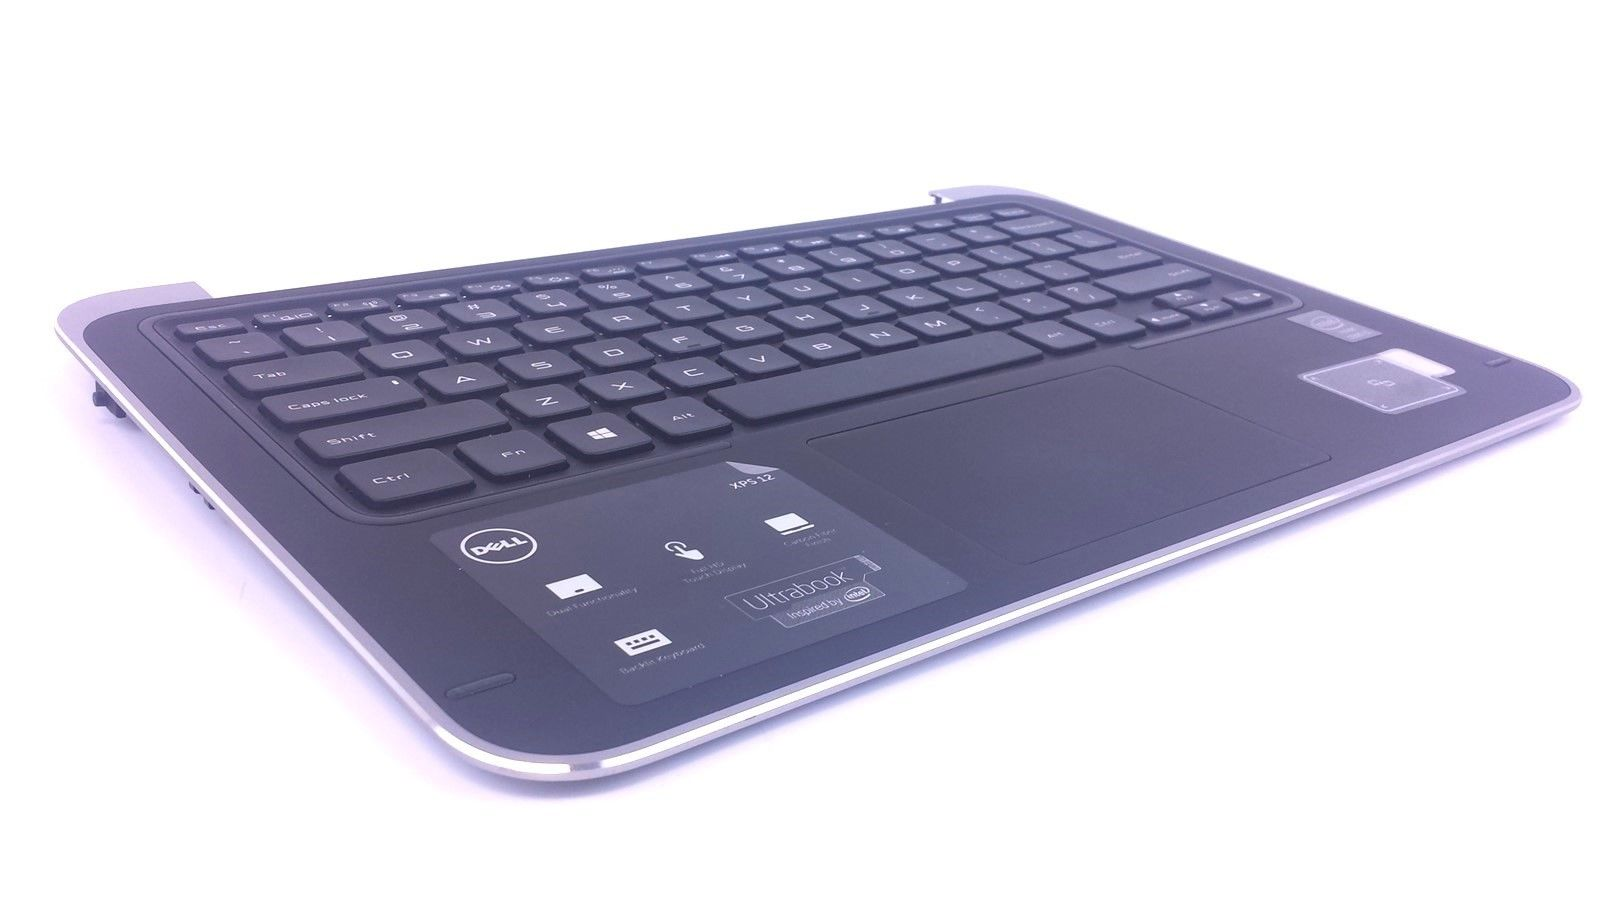 Dell XPS 12 9Q33 Assembly Genuine Laptop Palmrest Touchpad 20P5F Keyboard P6DWF